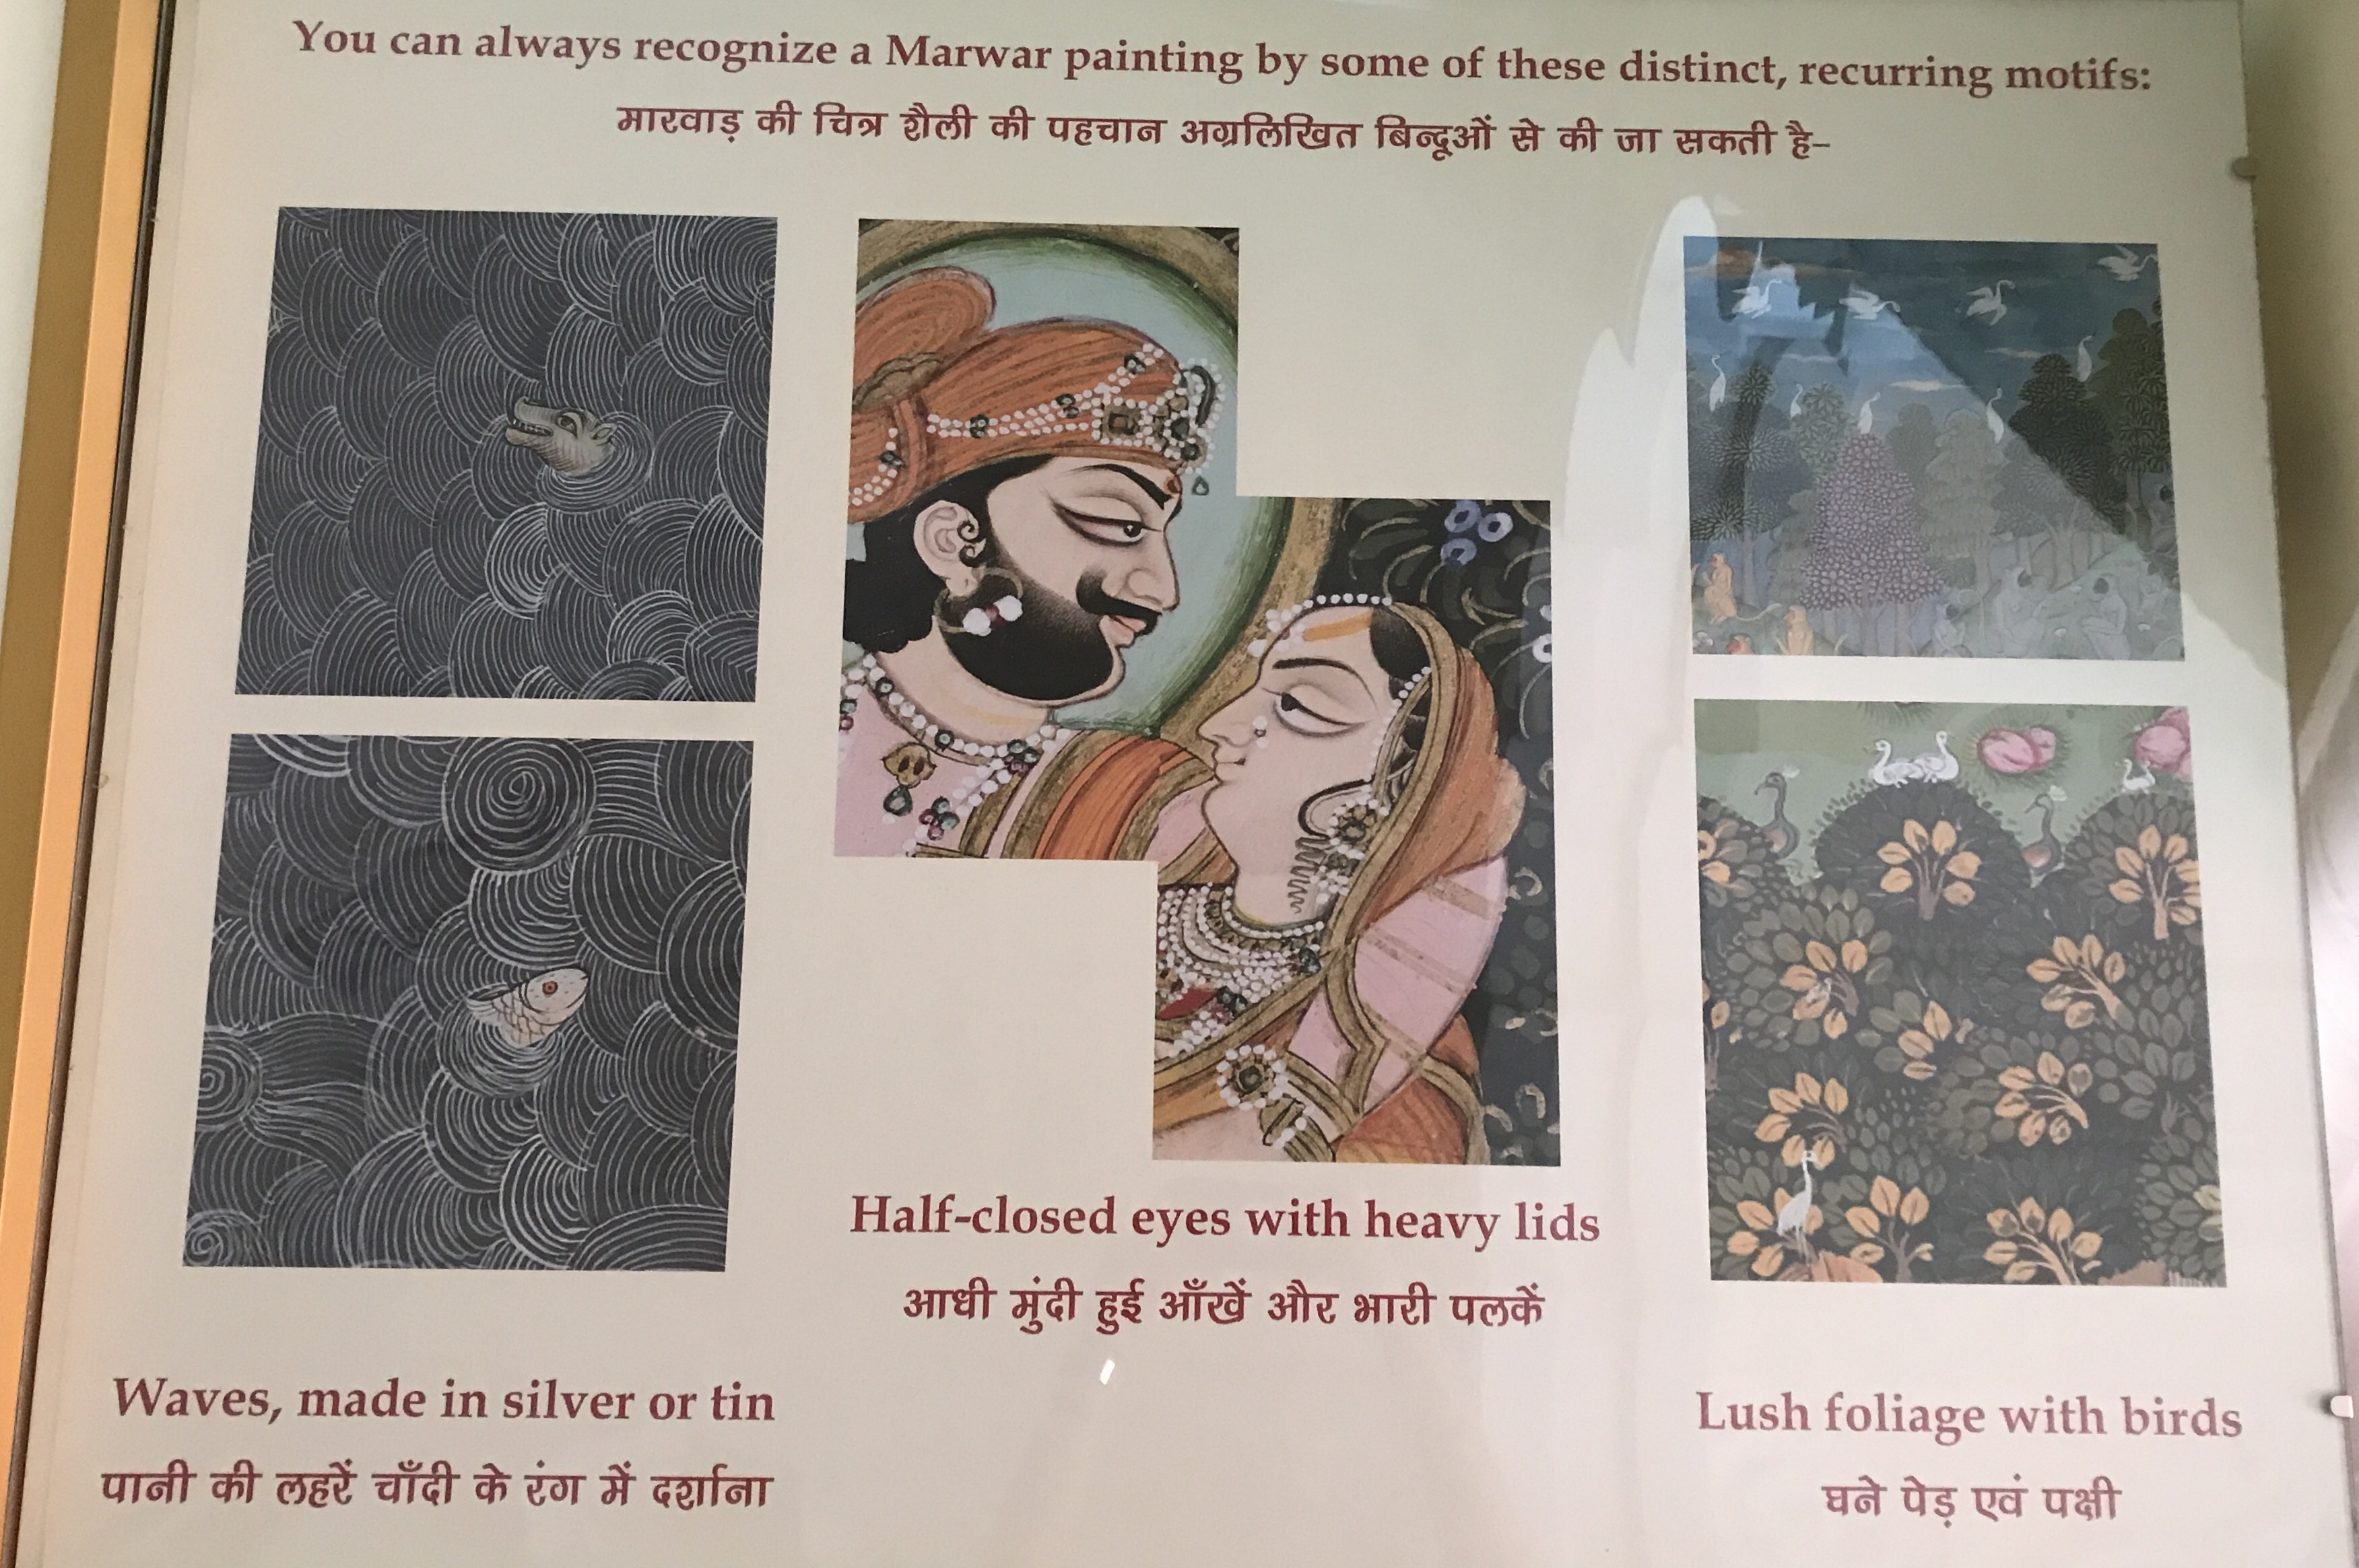 Distinctive features of a Marwad painting.